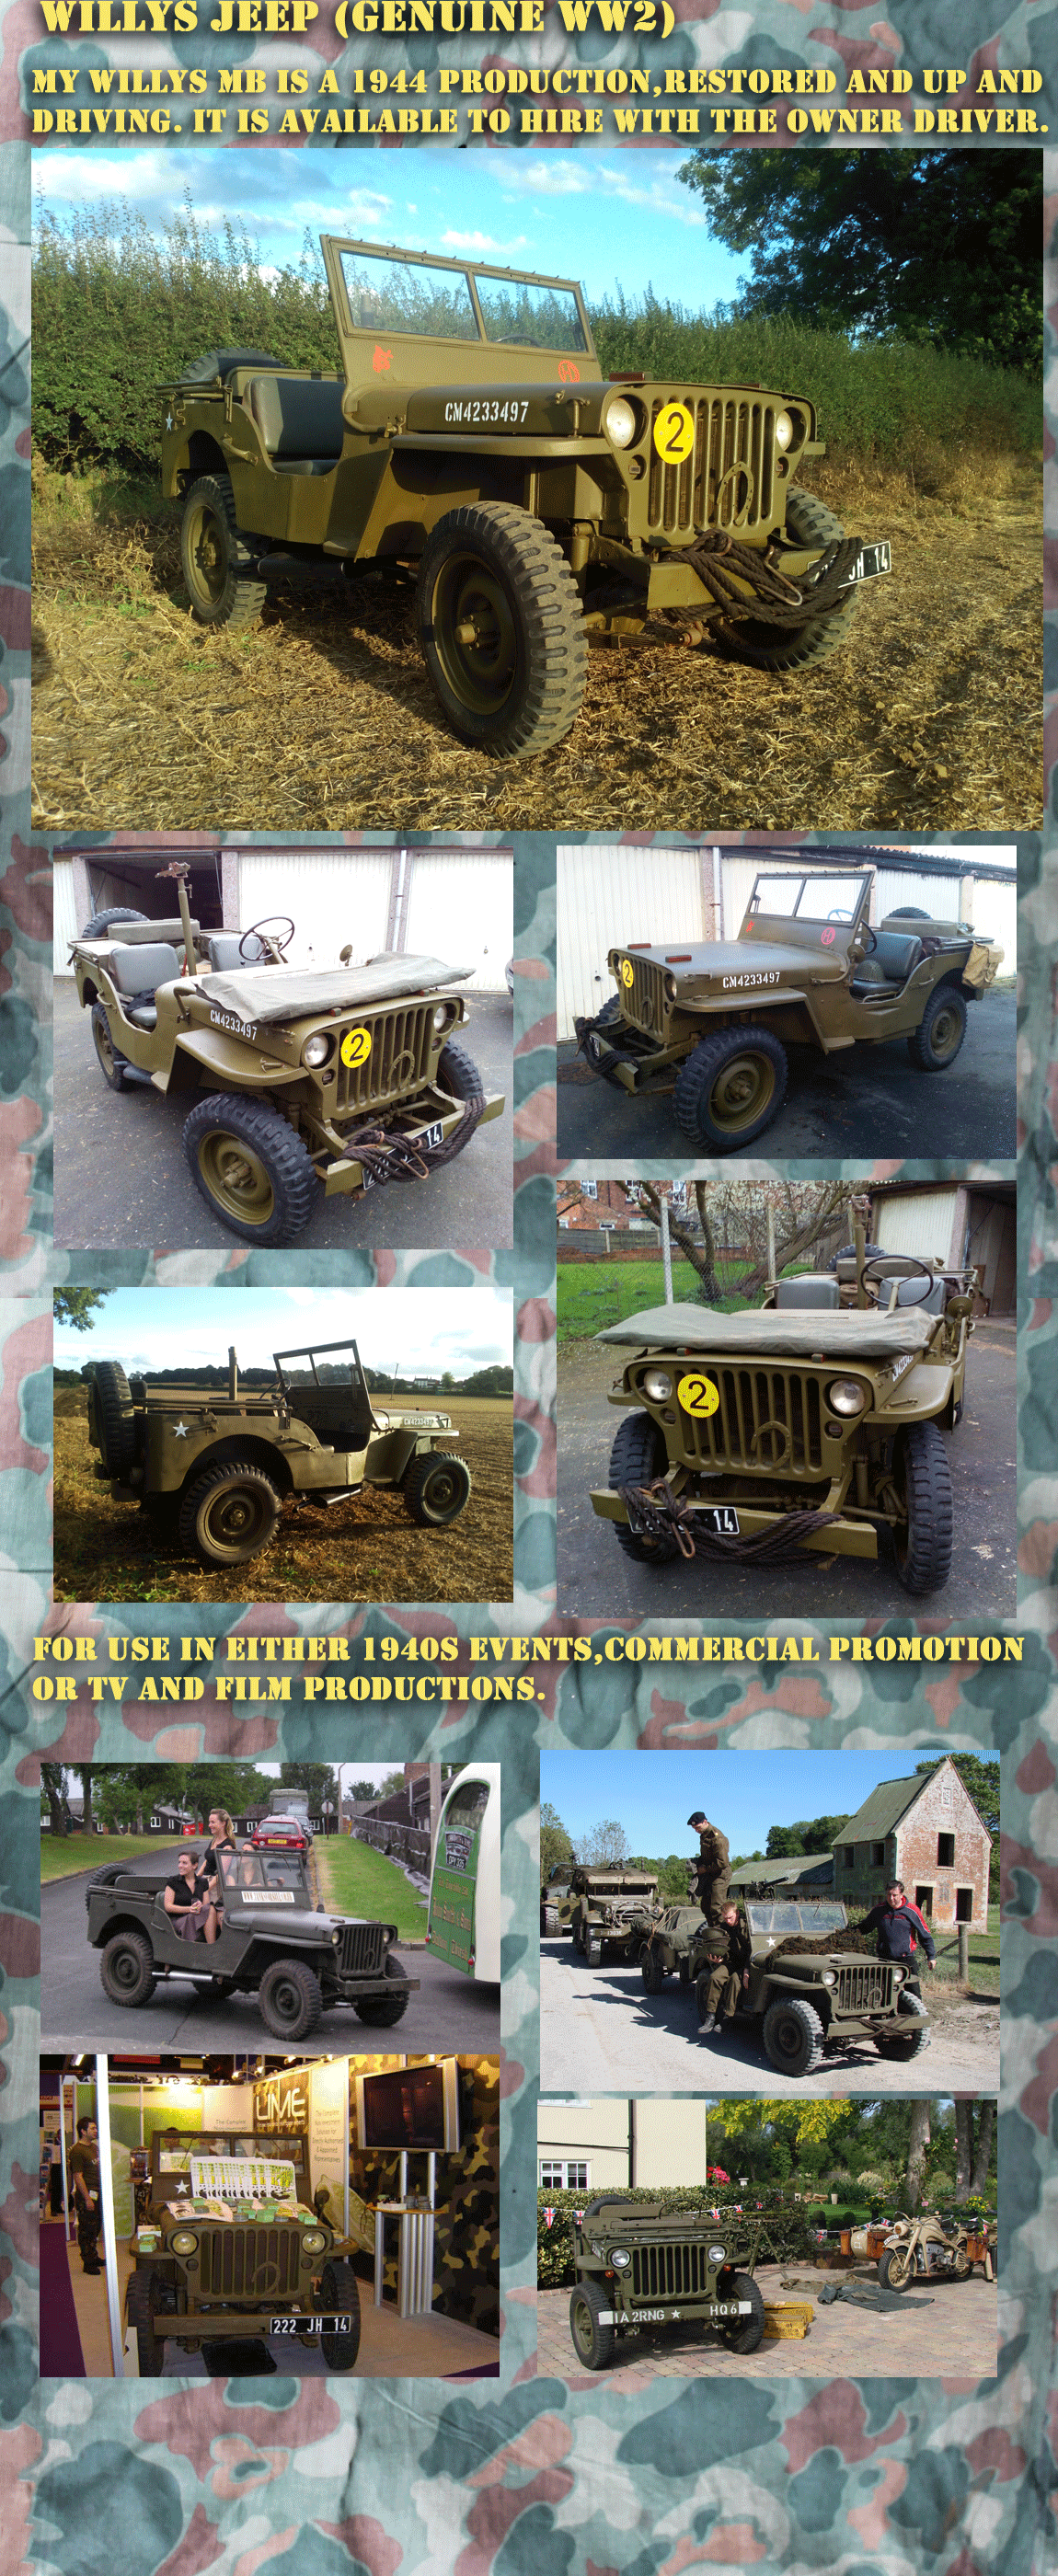 Willys Jeep WW2 USA for hire